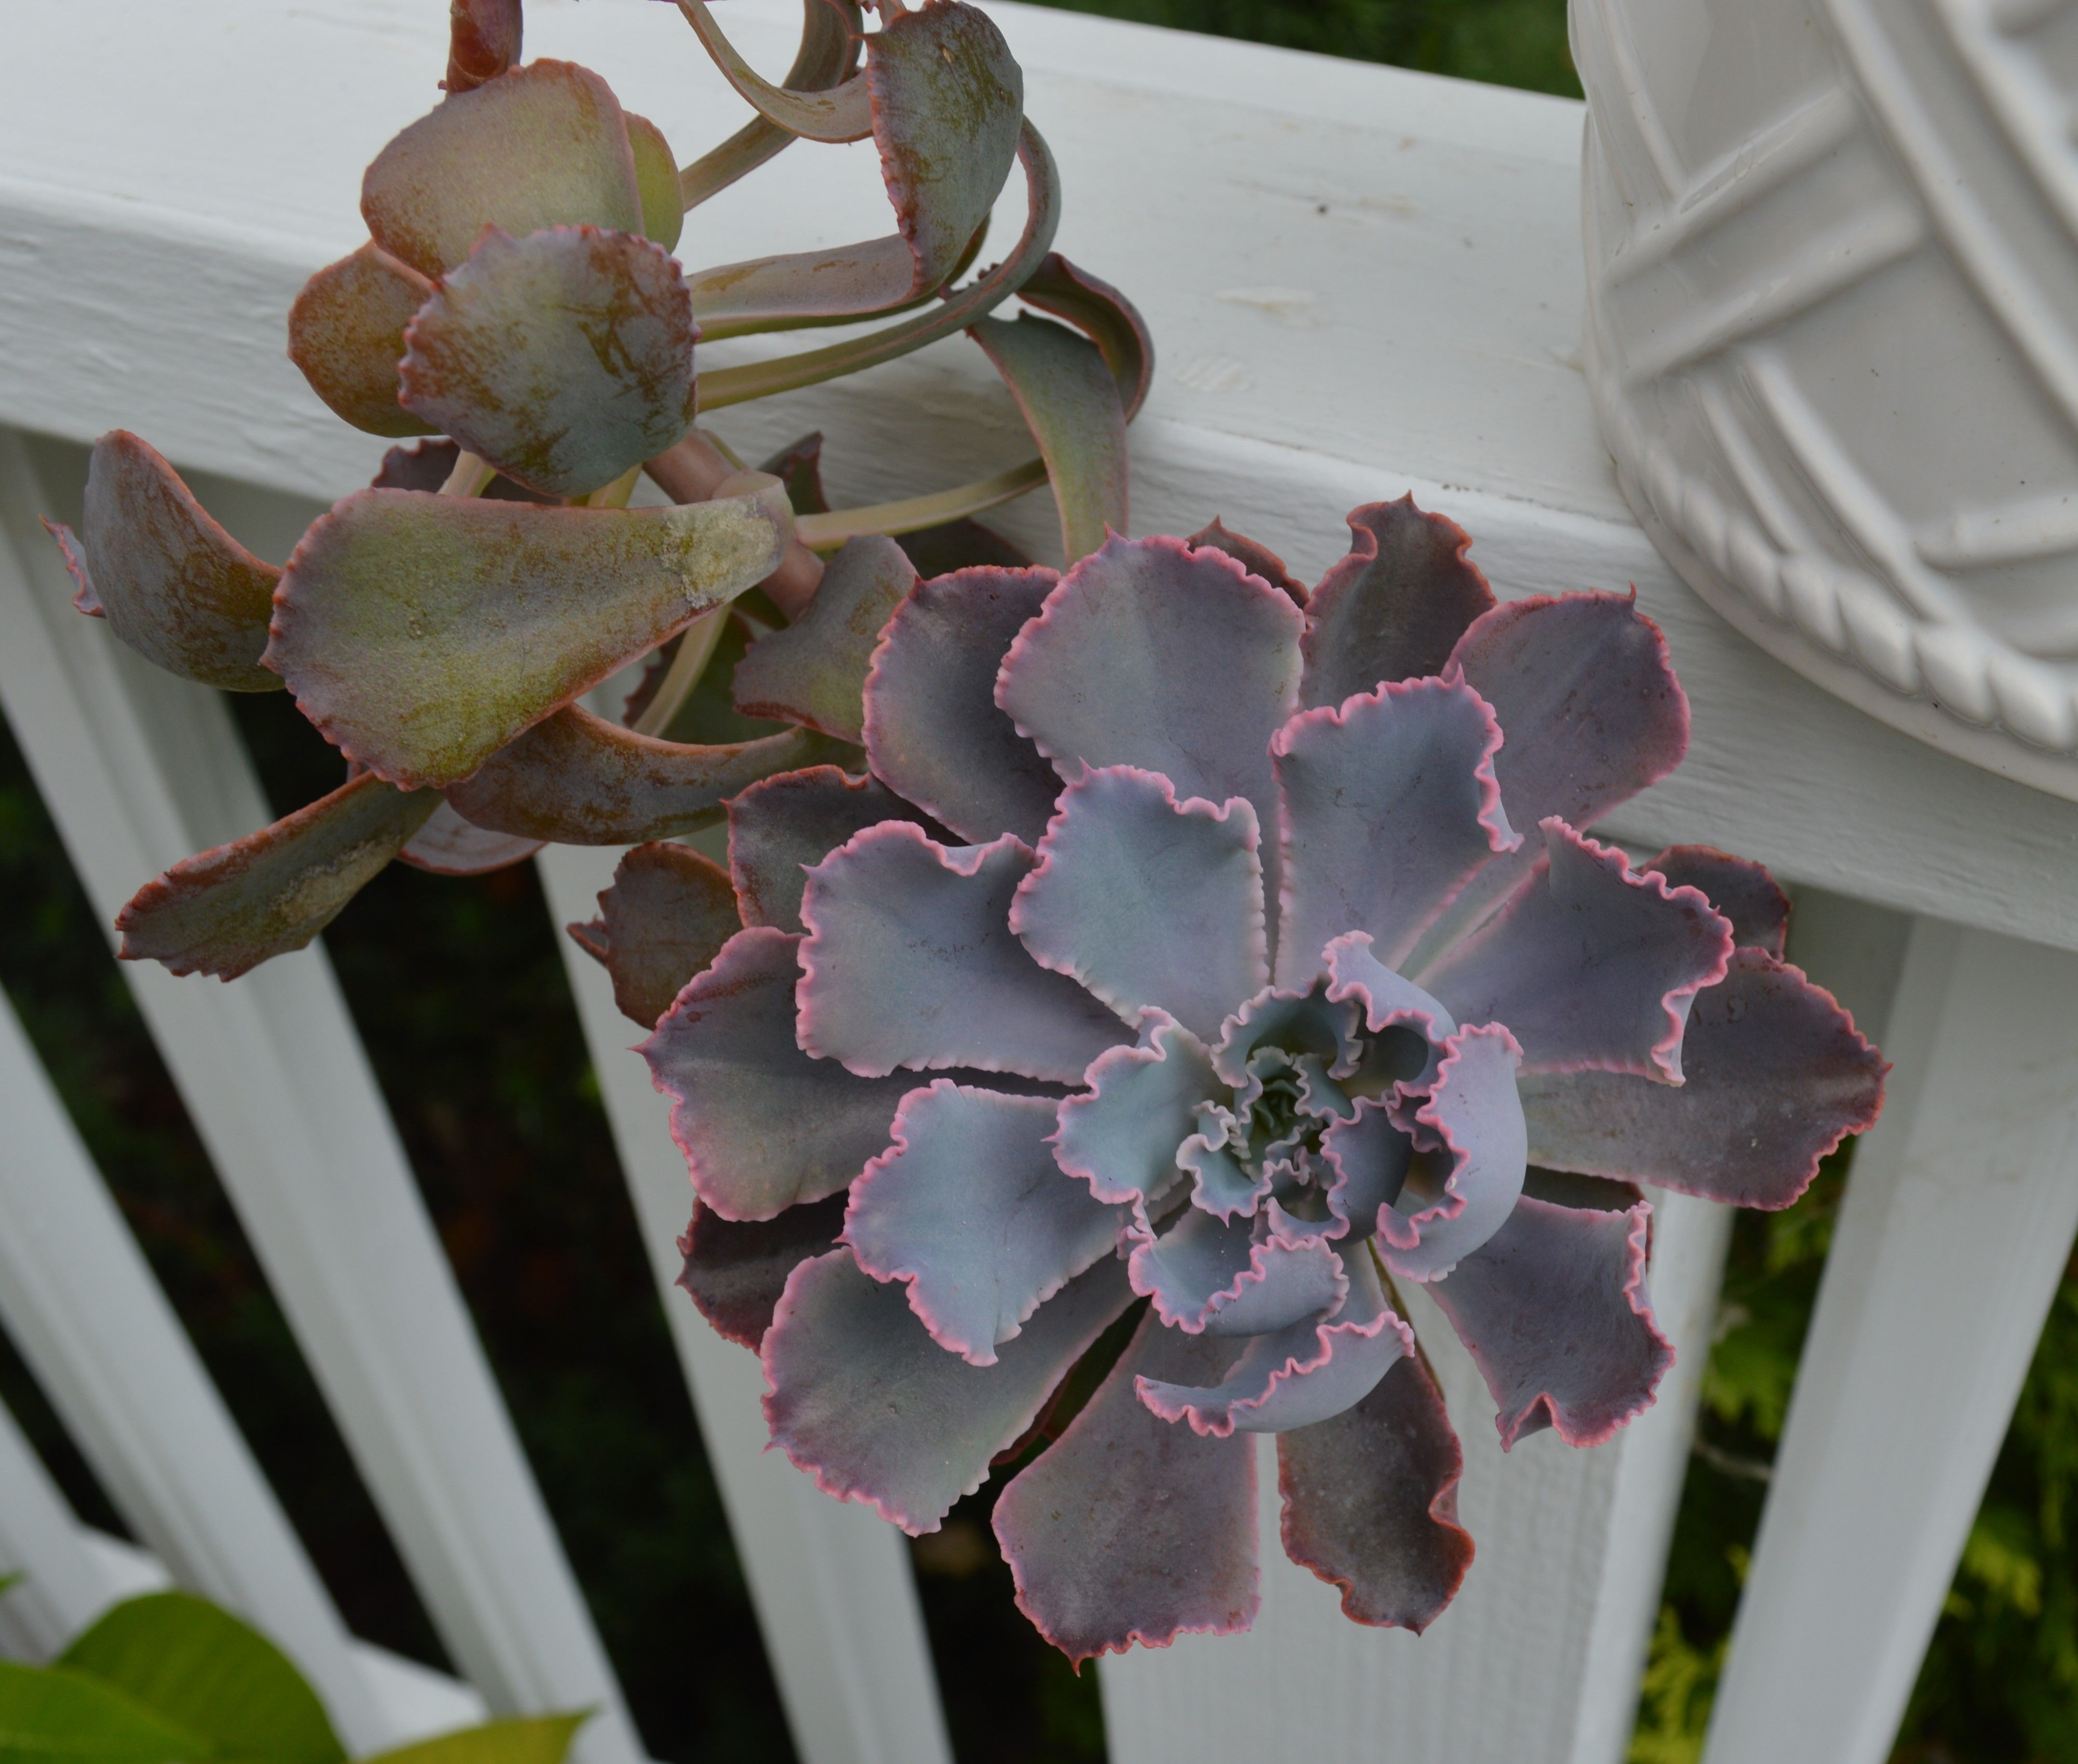 Echeveria 'Neon Breakers' - I have this. hardy to 36*